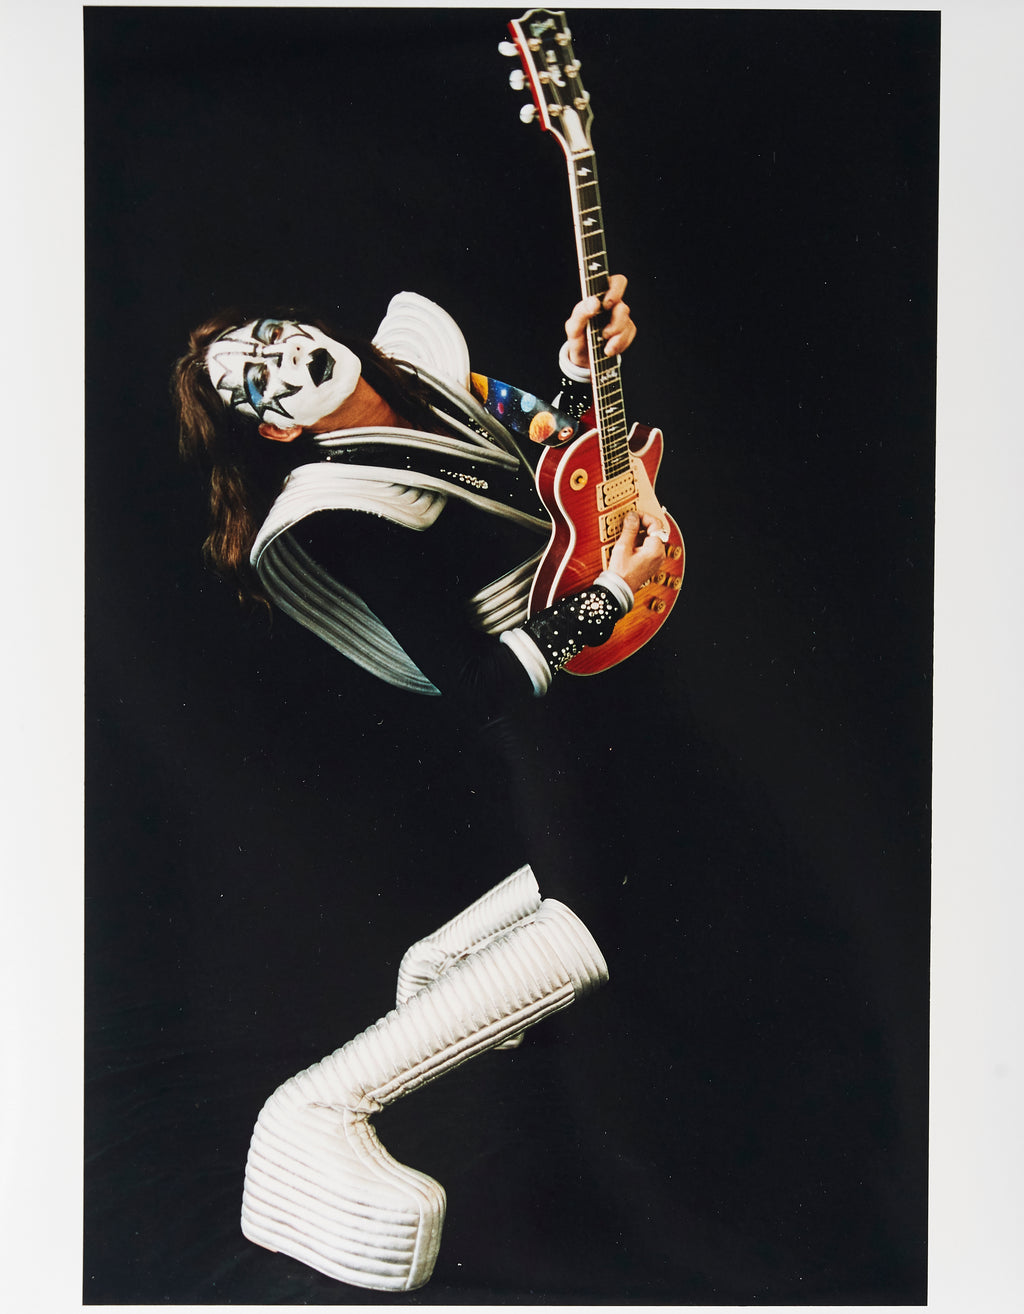 Ace Frehley at Smashbox Studios - 11 x 14 - Kodak C-Print